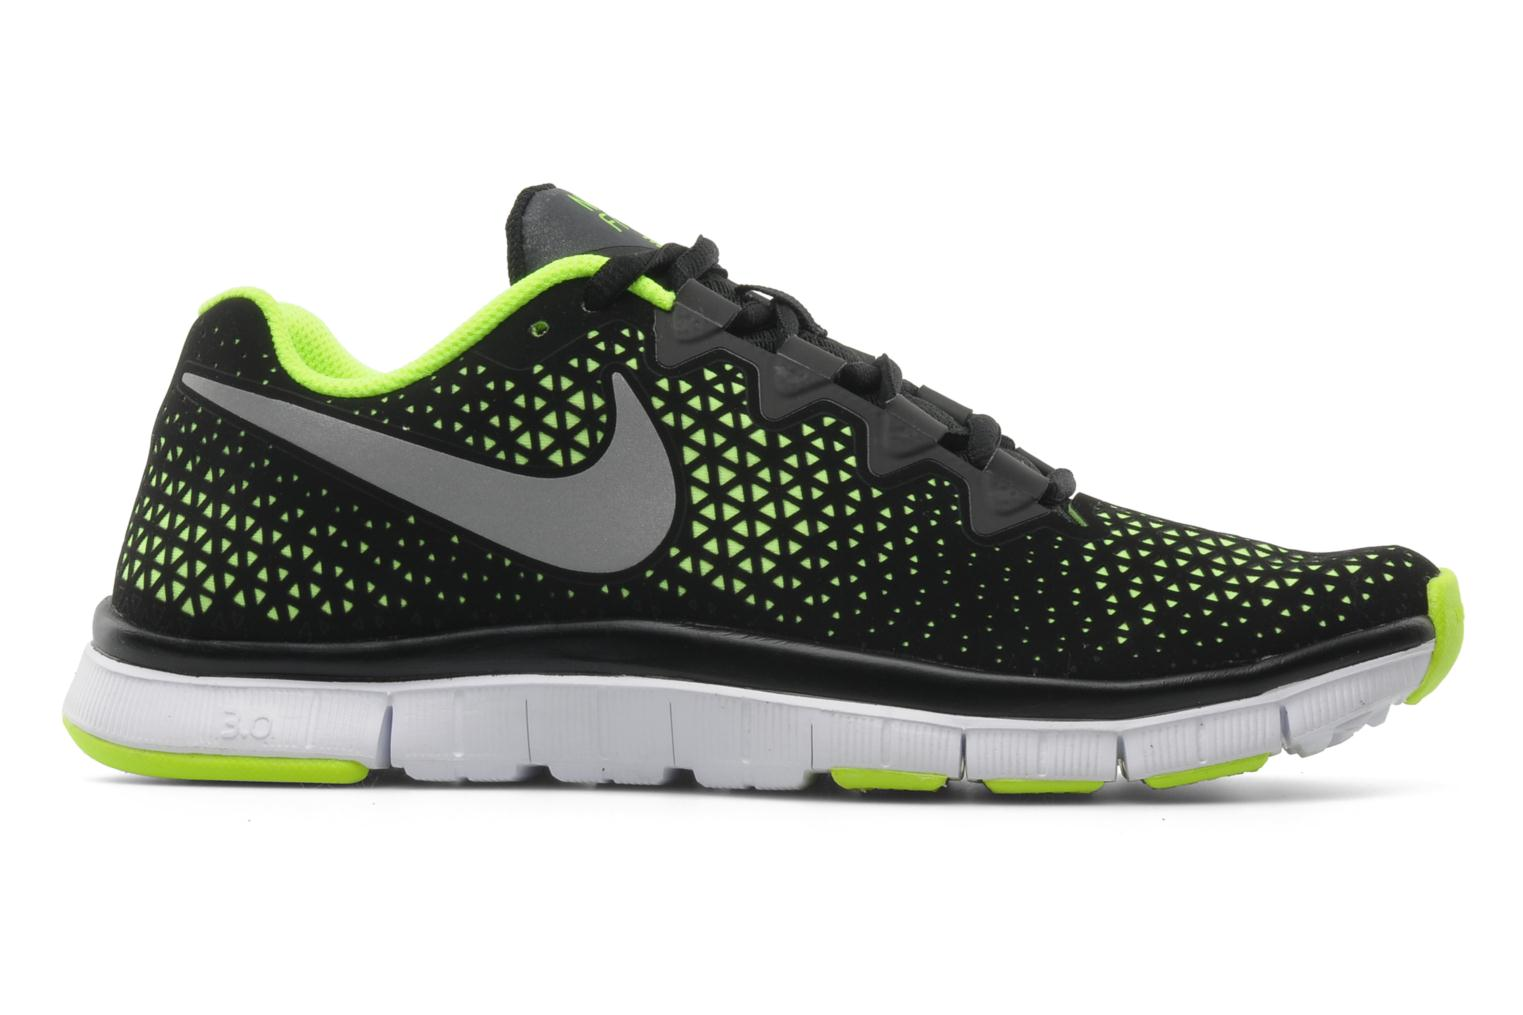 Nike free haven 3.0 Black / reflect silver-vlt-white